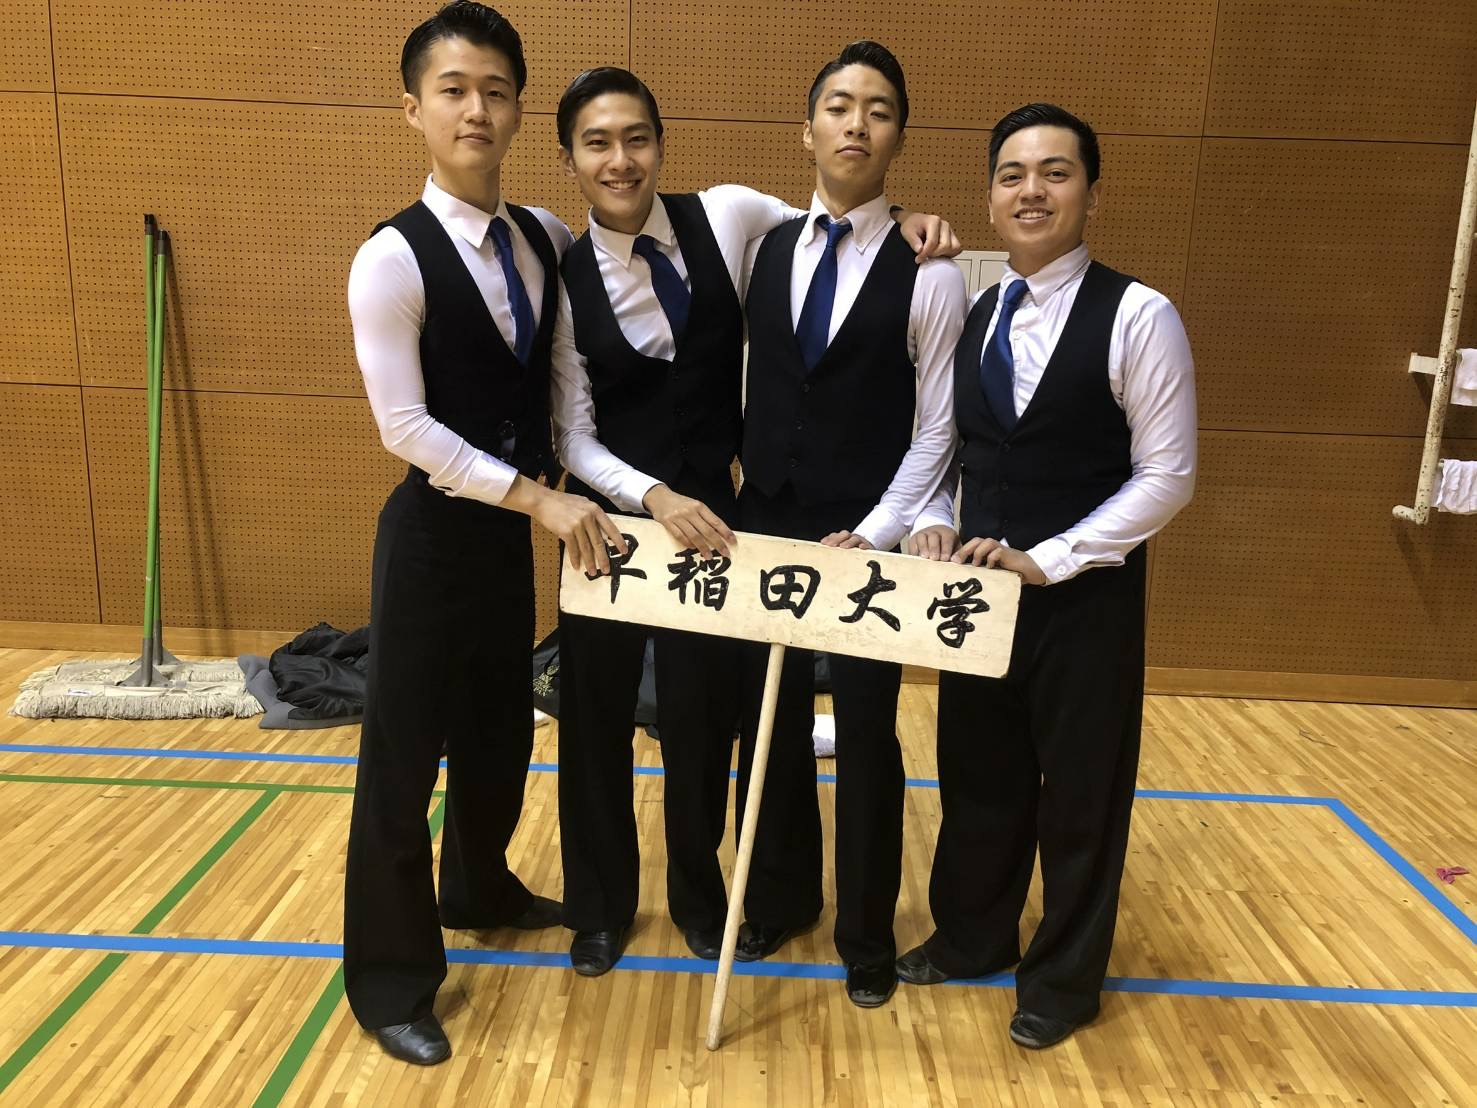 GW student Lorenz Vargas posing with members of the Waseda University Ballroom Dance Club.